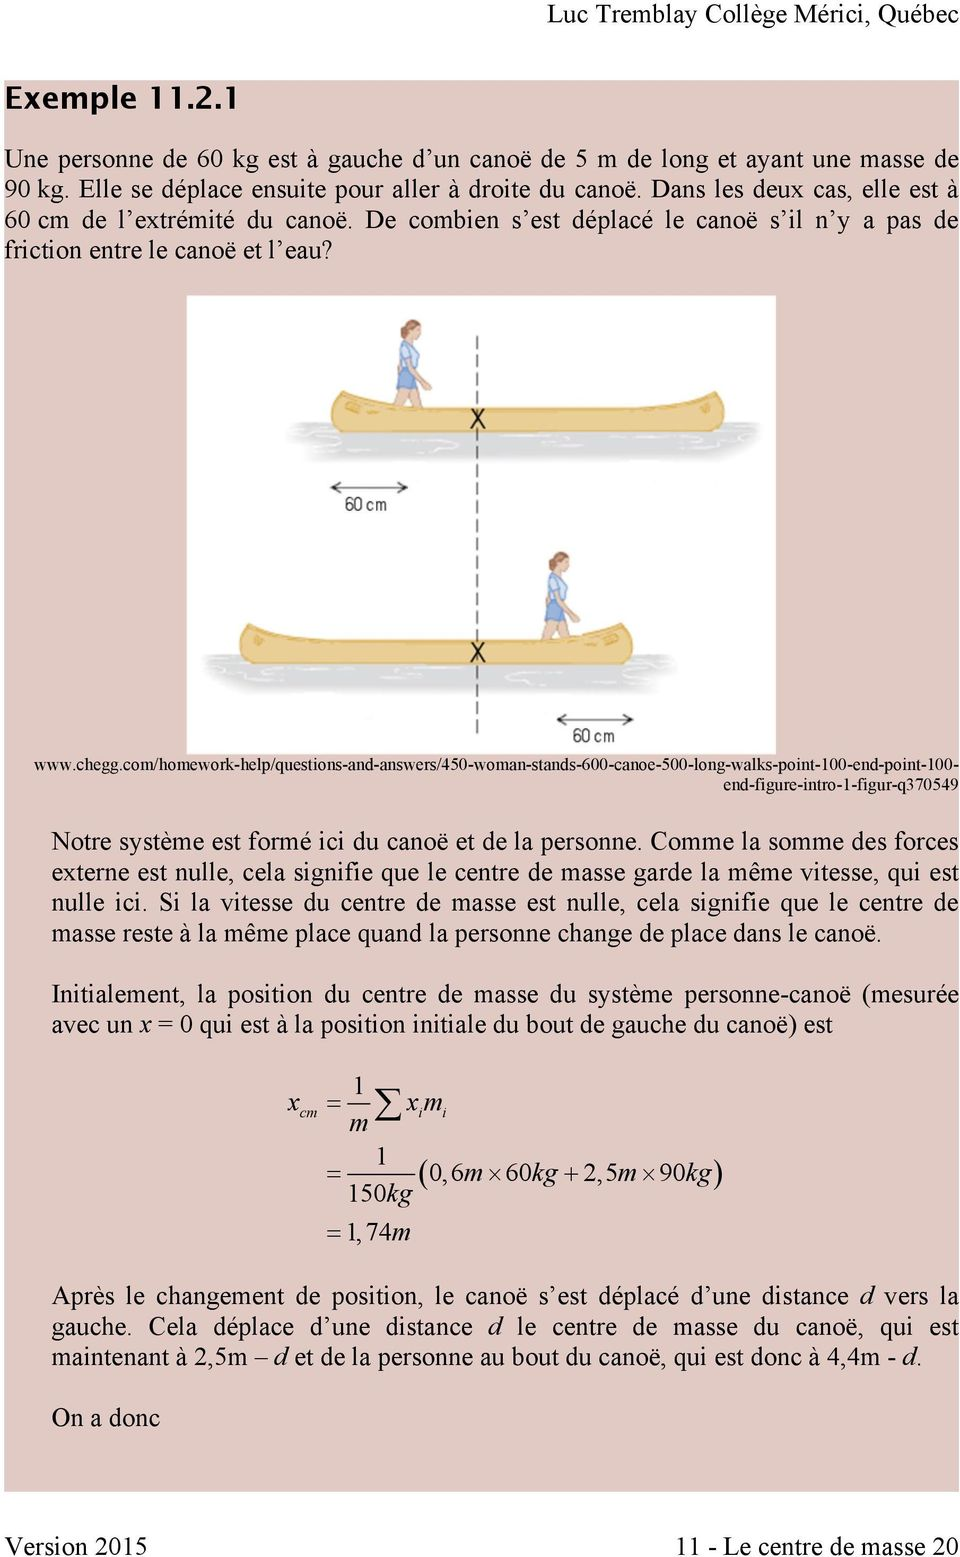 co/hoework-help/questions-and-answers/450-woan-stands-600-canoe-500-long-walks-point-00-end-point-00- end-figure-intro--figur-q370549 Notre systèe est foré ici du canoë et de la personne.